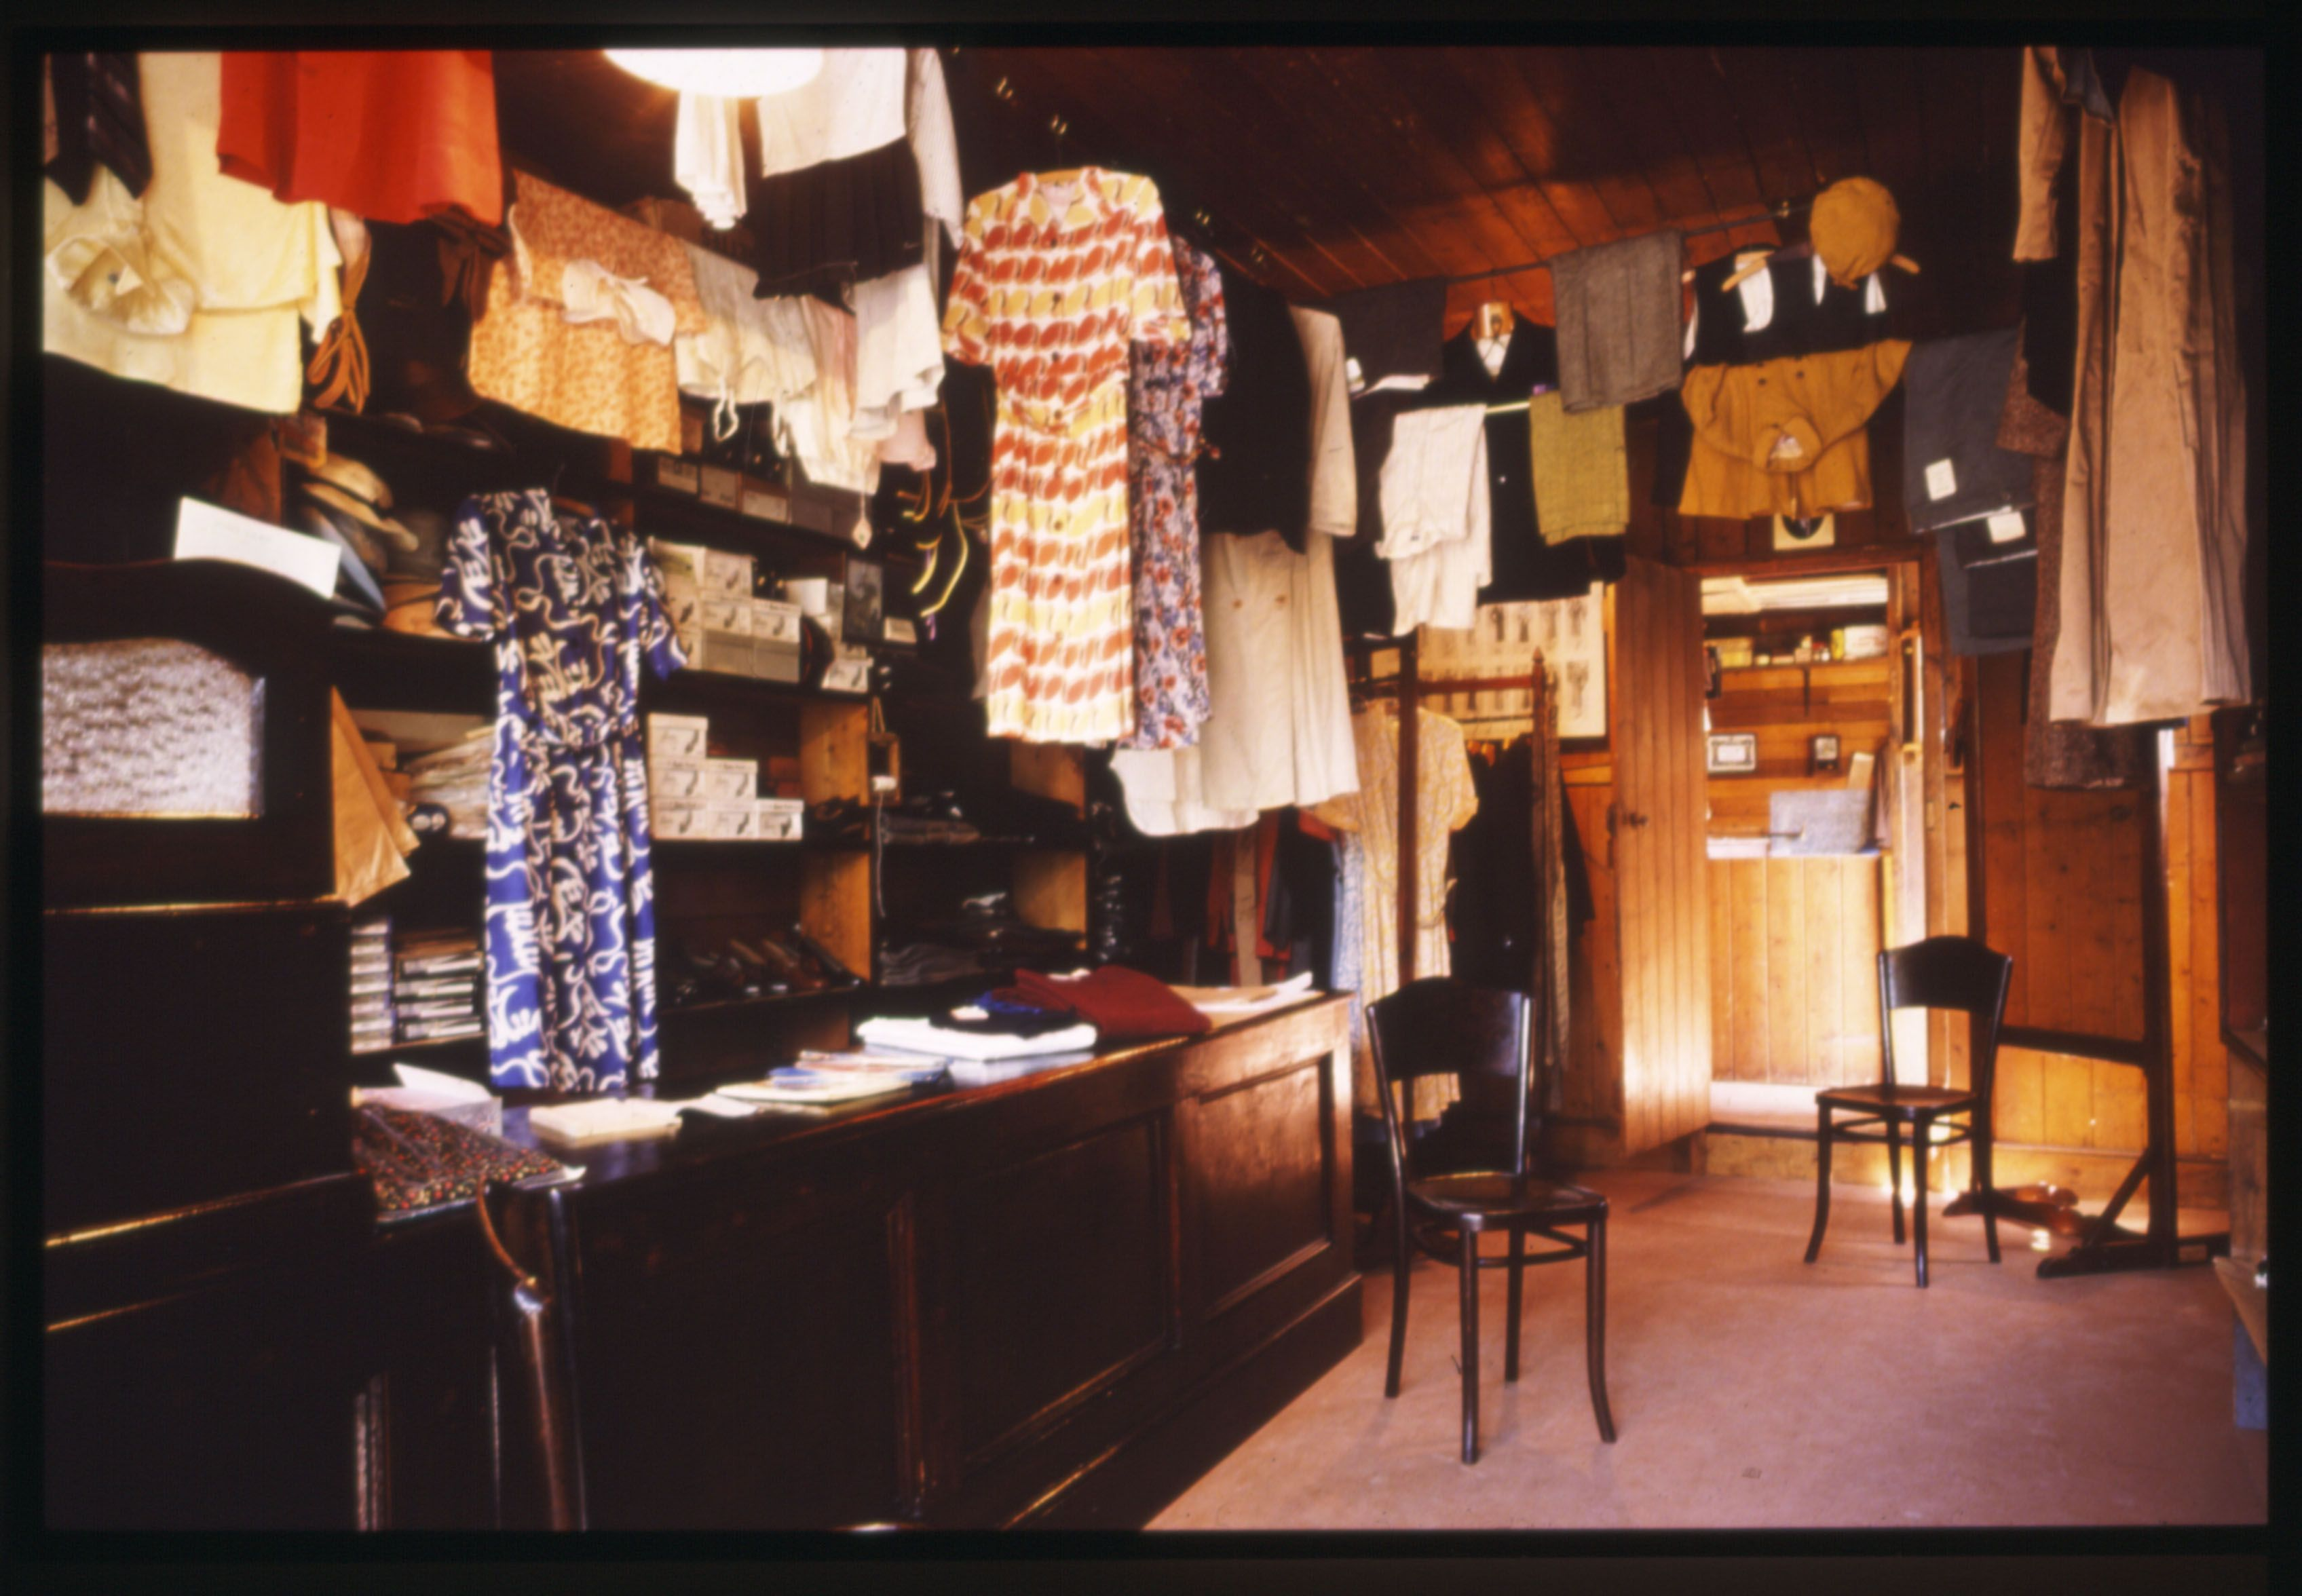 Interior of D. Thomas's Tailor's shop at St Fagans National Museum of History